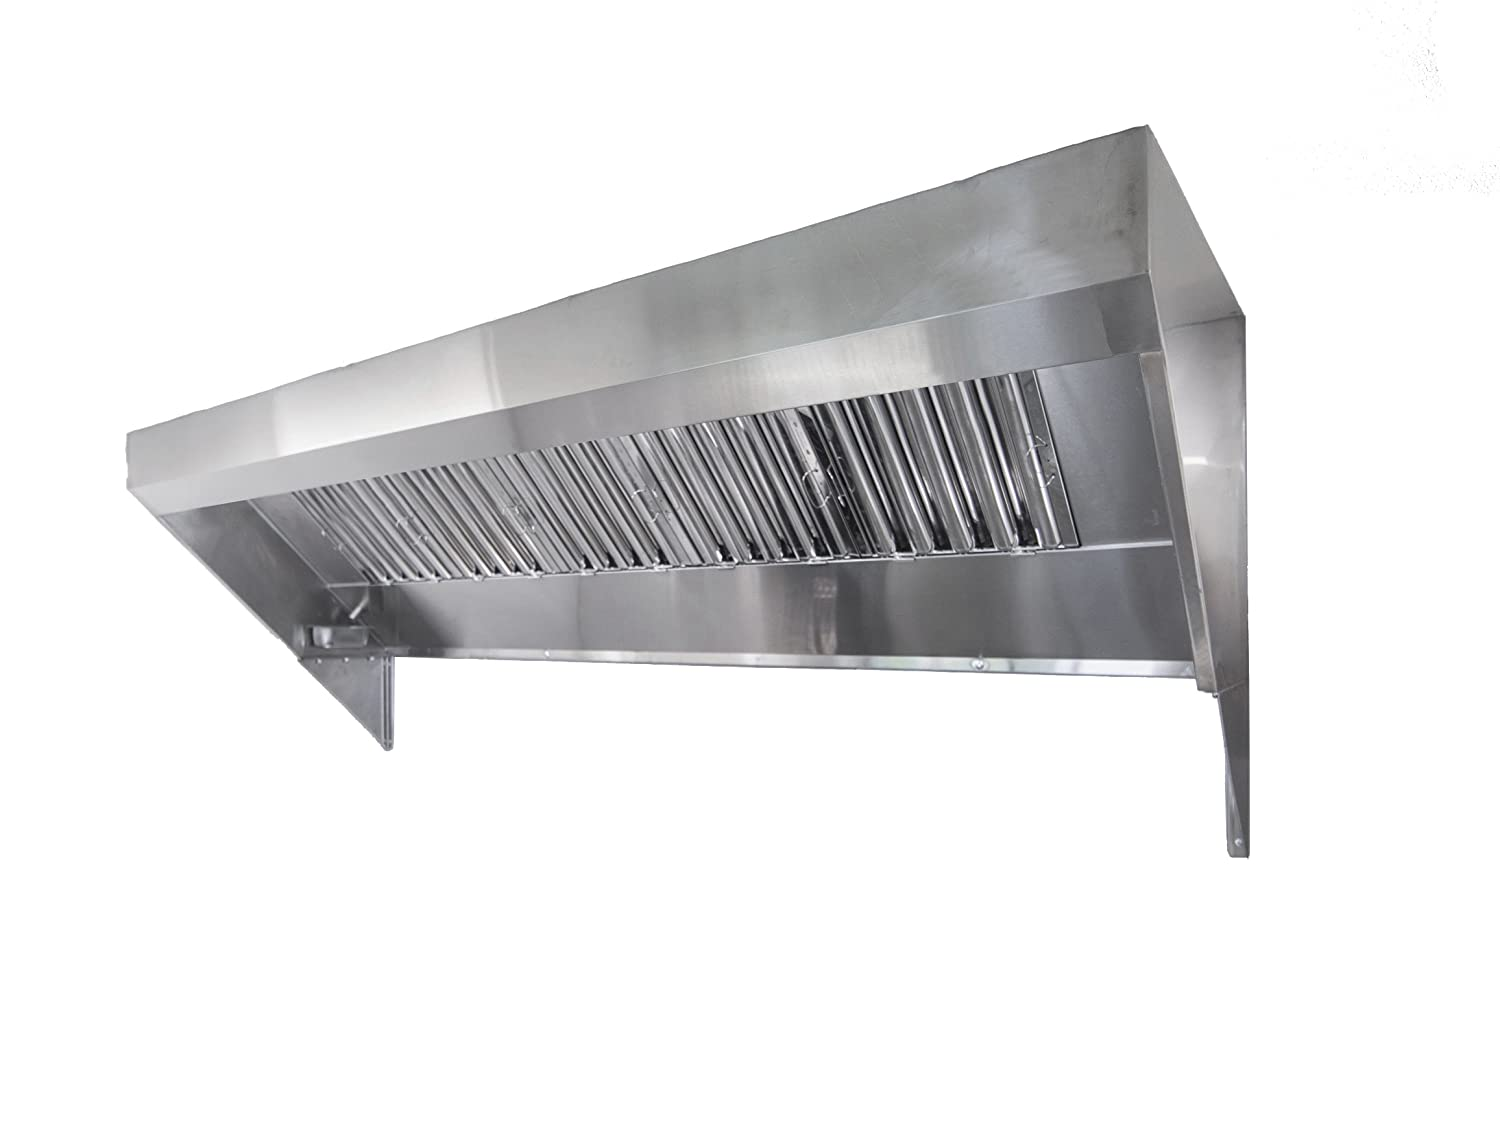 Amazon.com: 6\' Food Truck Concession Trailer Hood: Kitchen & Dining